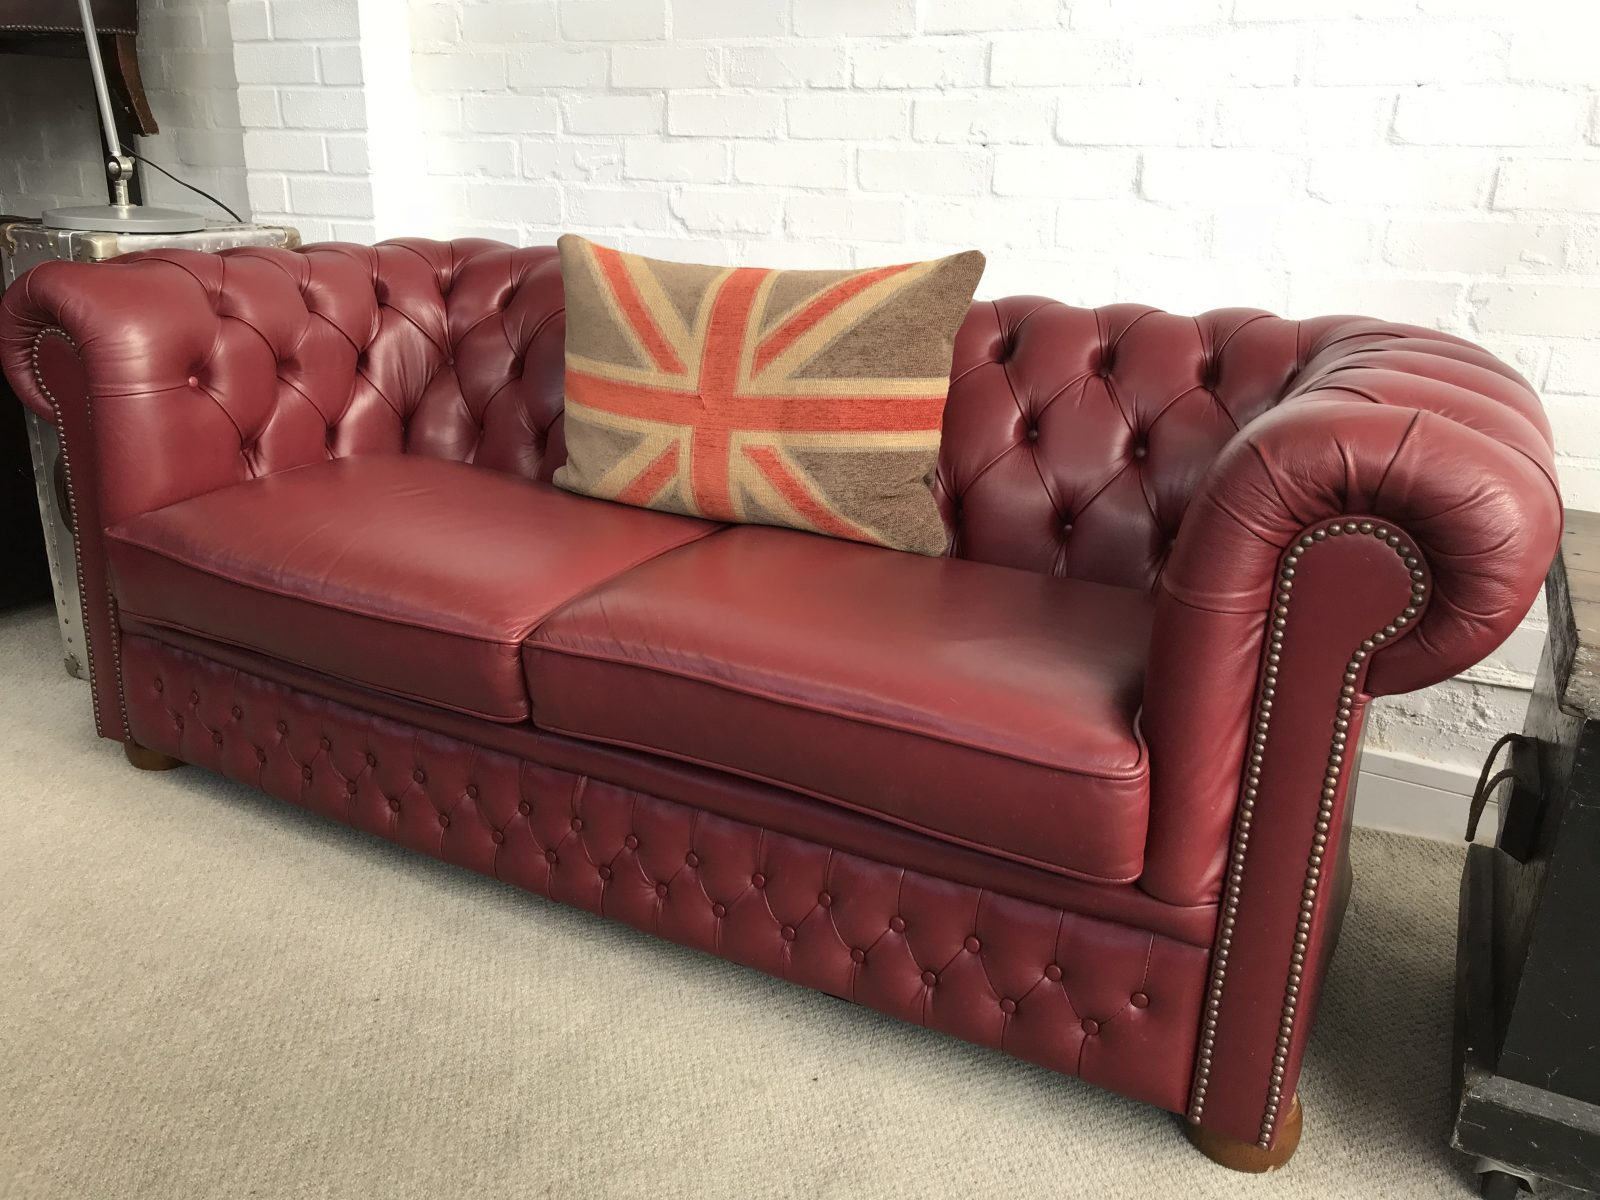 Stunning Burgundy 3 seater Chesterfield Sofa      Chesterfields at the     Stunning Burgundy 3 seater Chesterfield Sofa